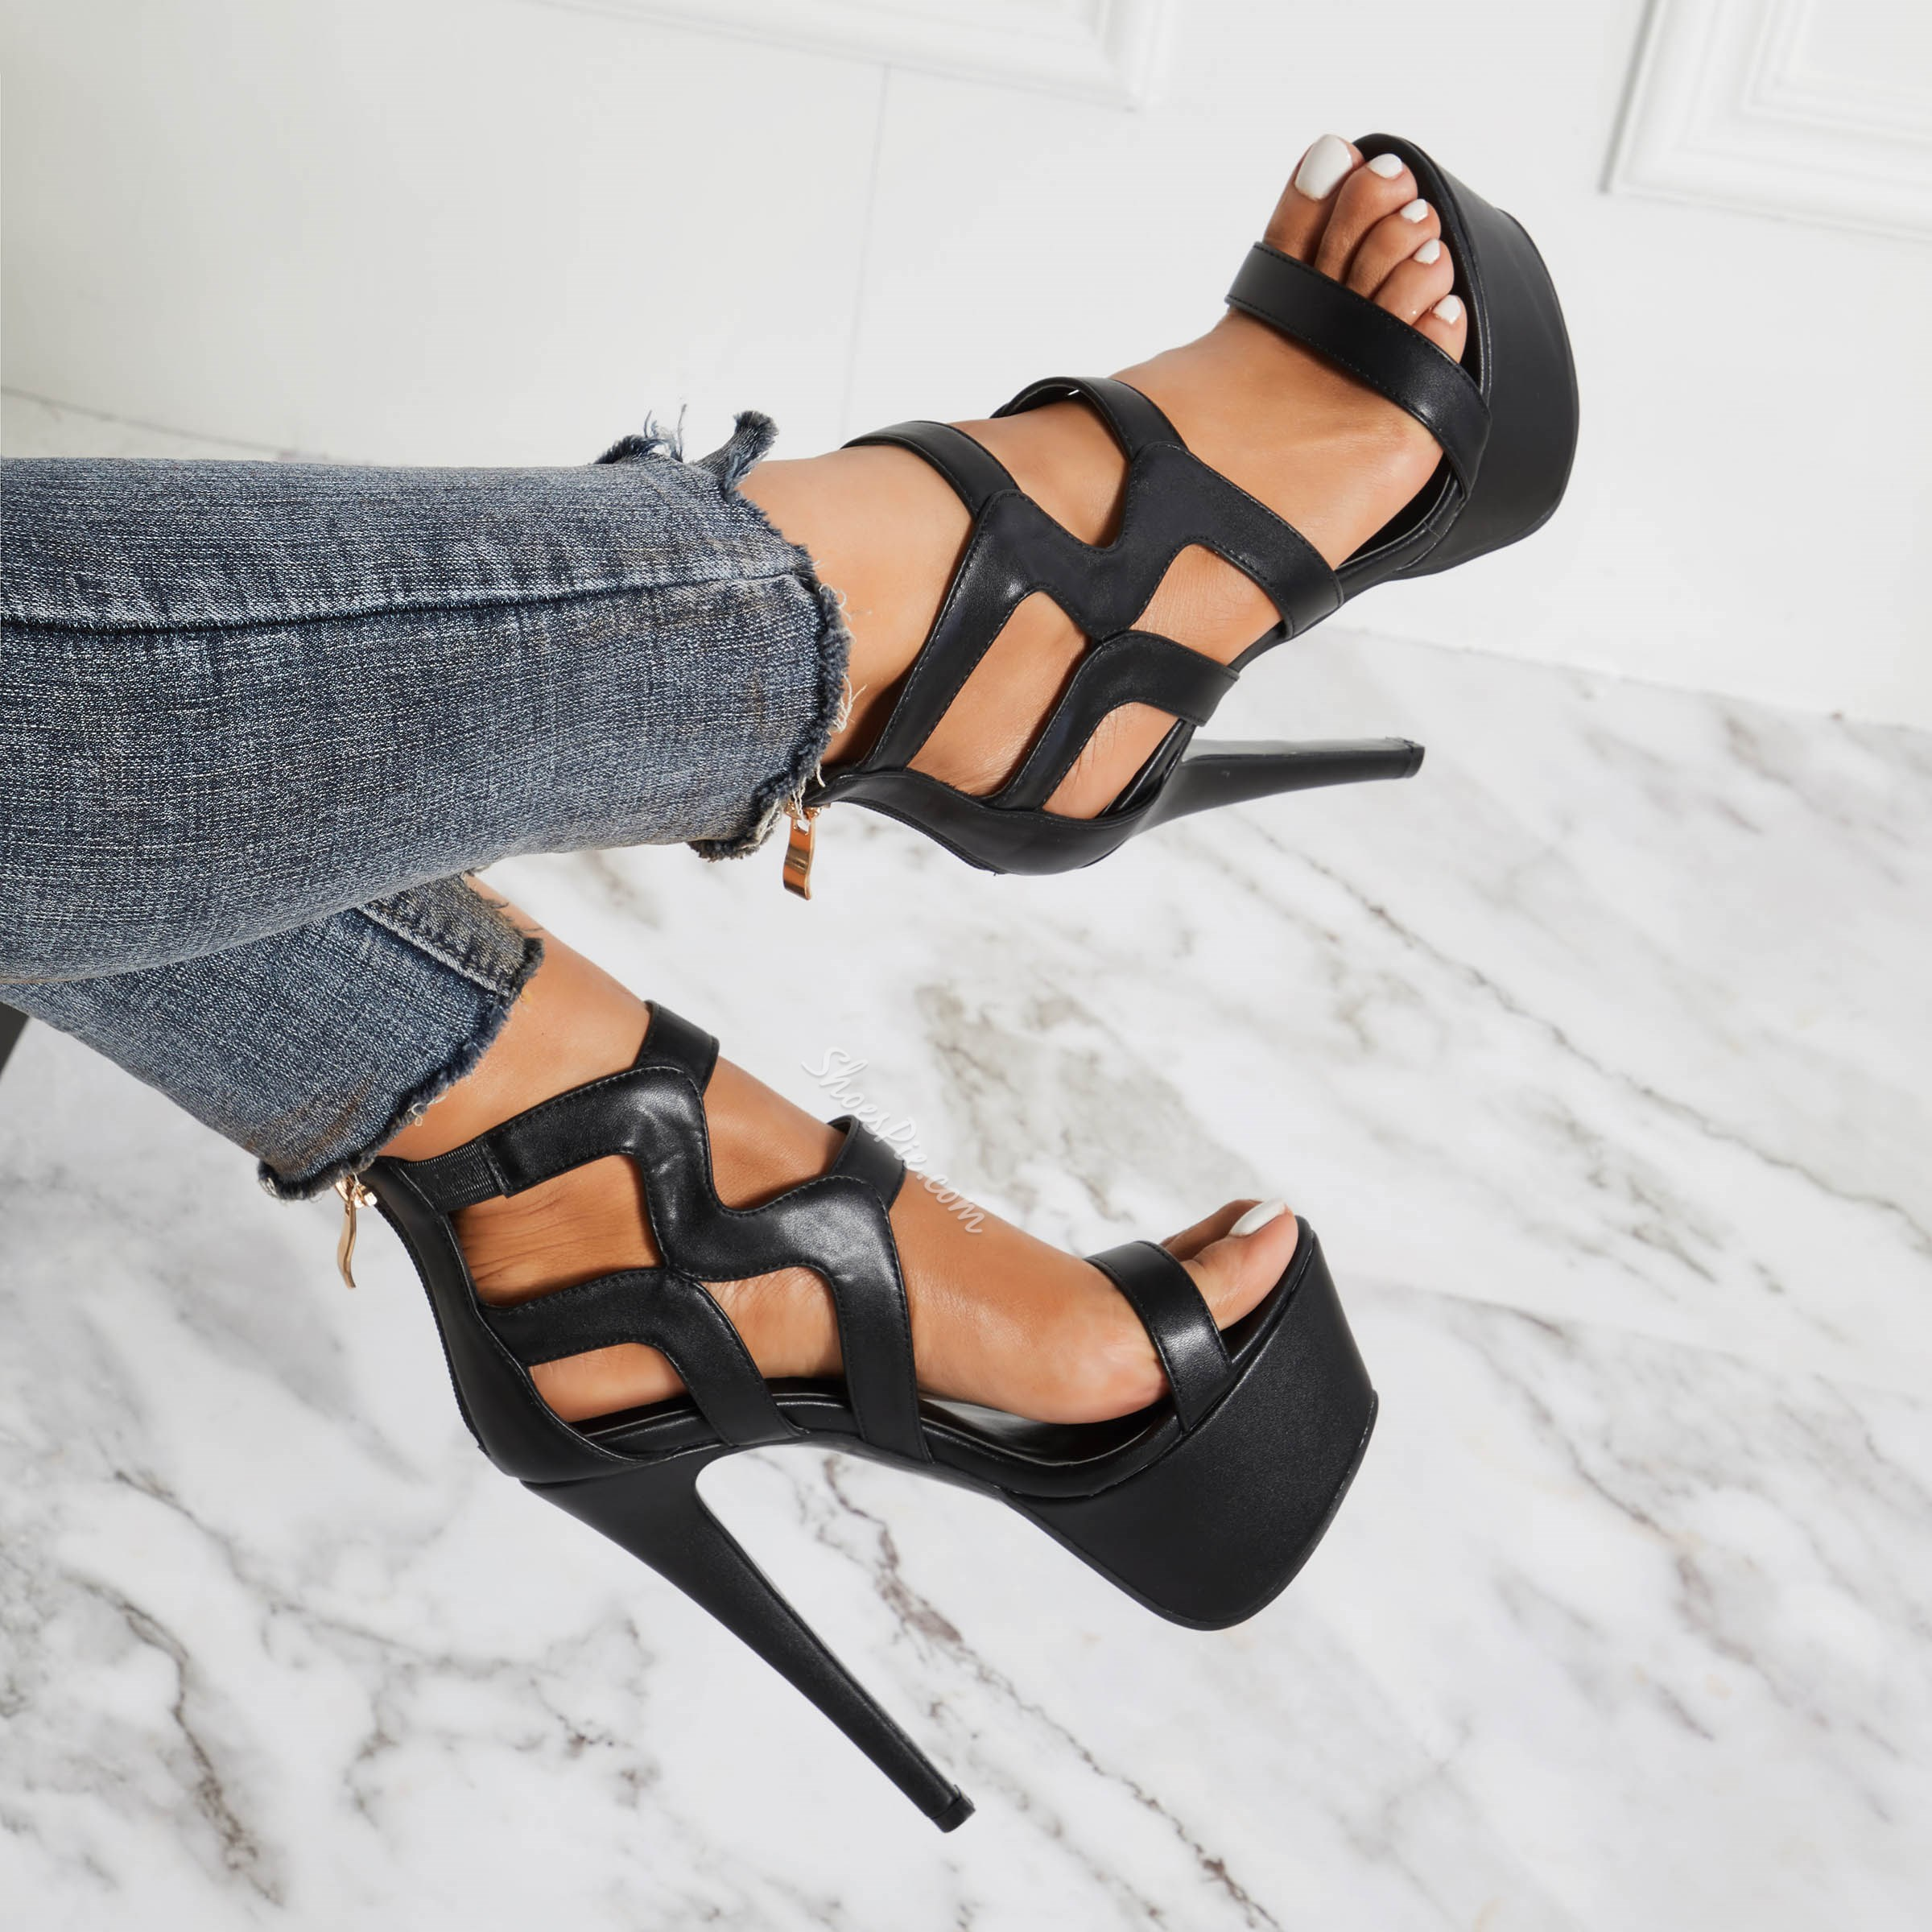 Shoespie Sexy High Stiletto Heel Platform Open Toe Sandals